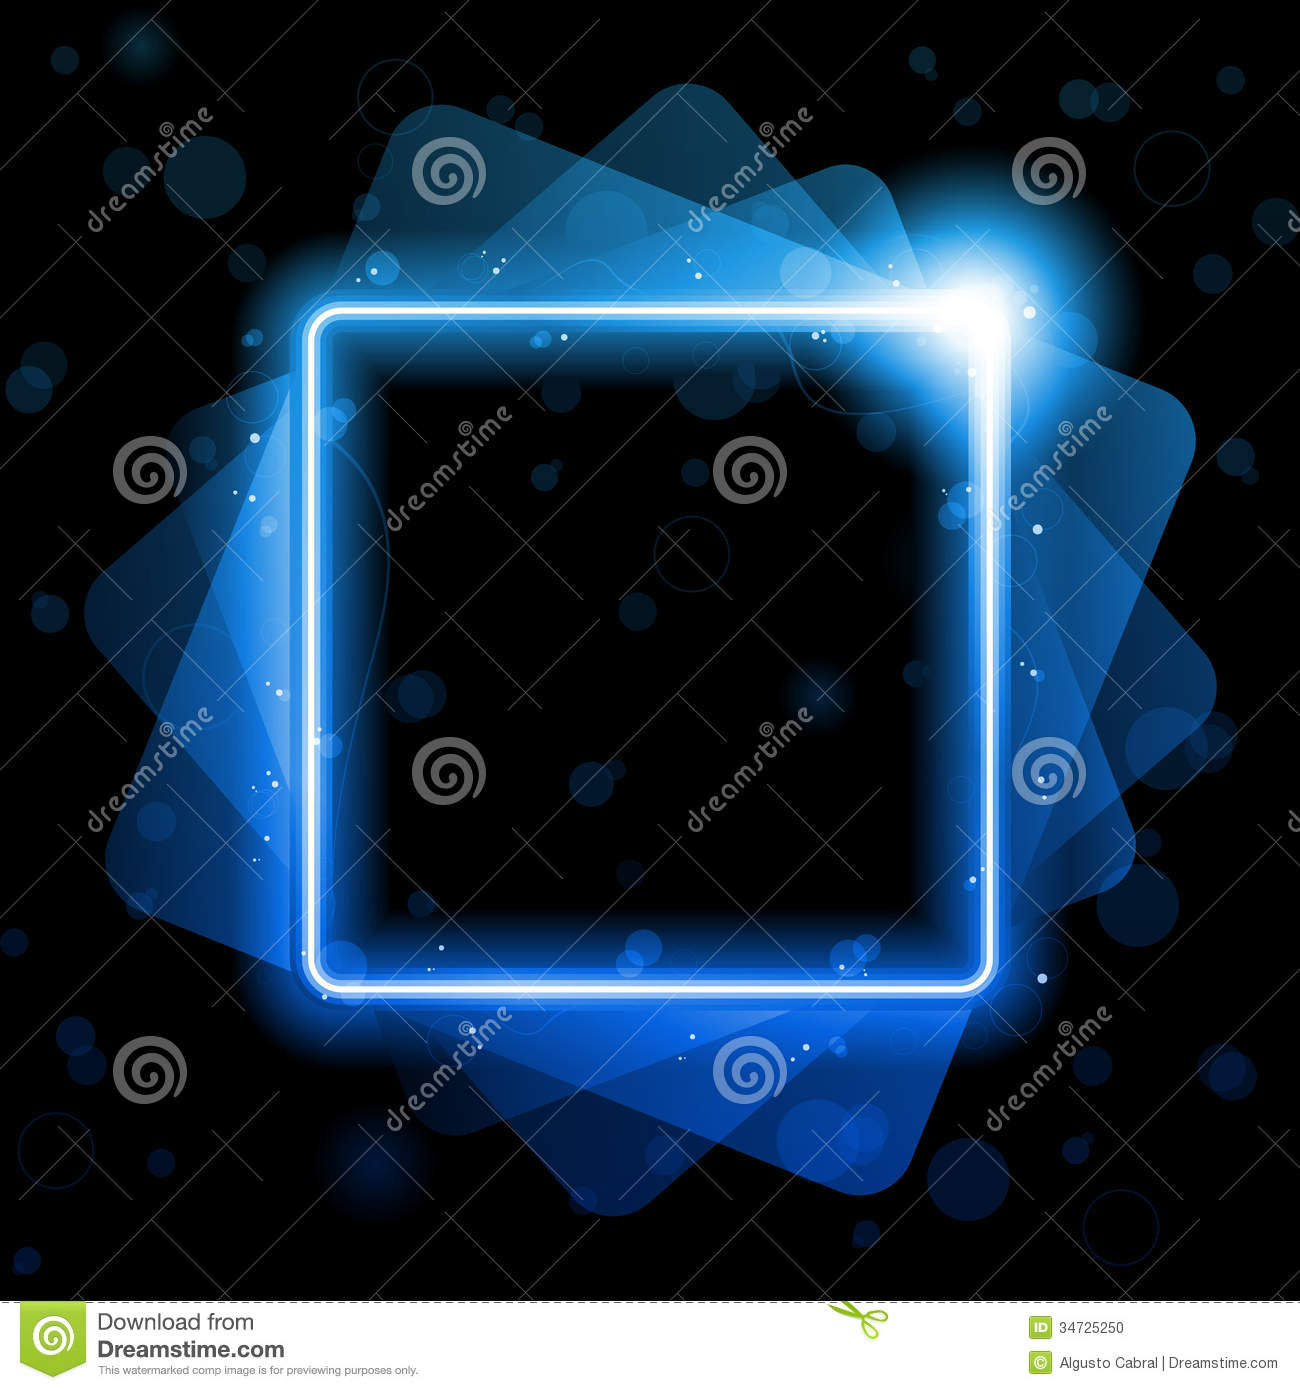 Modern hotel room interior stock photo image 18197840 - Blue Square Lines Background Neon Laser Stock Photo